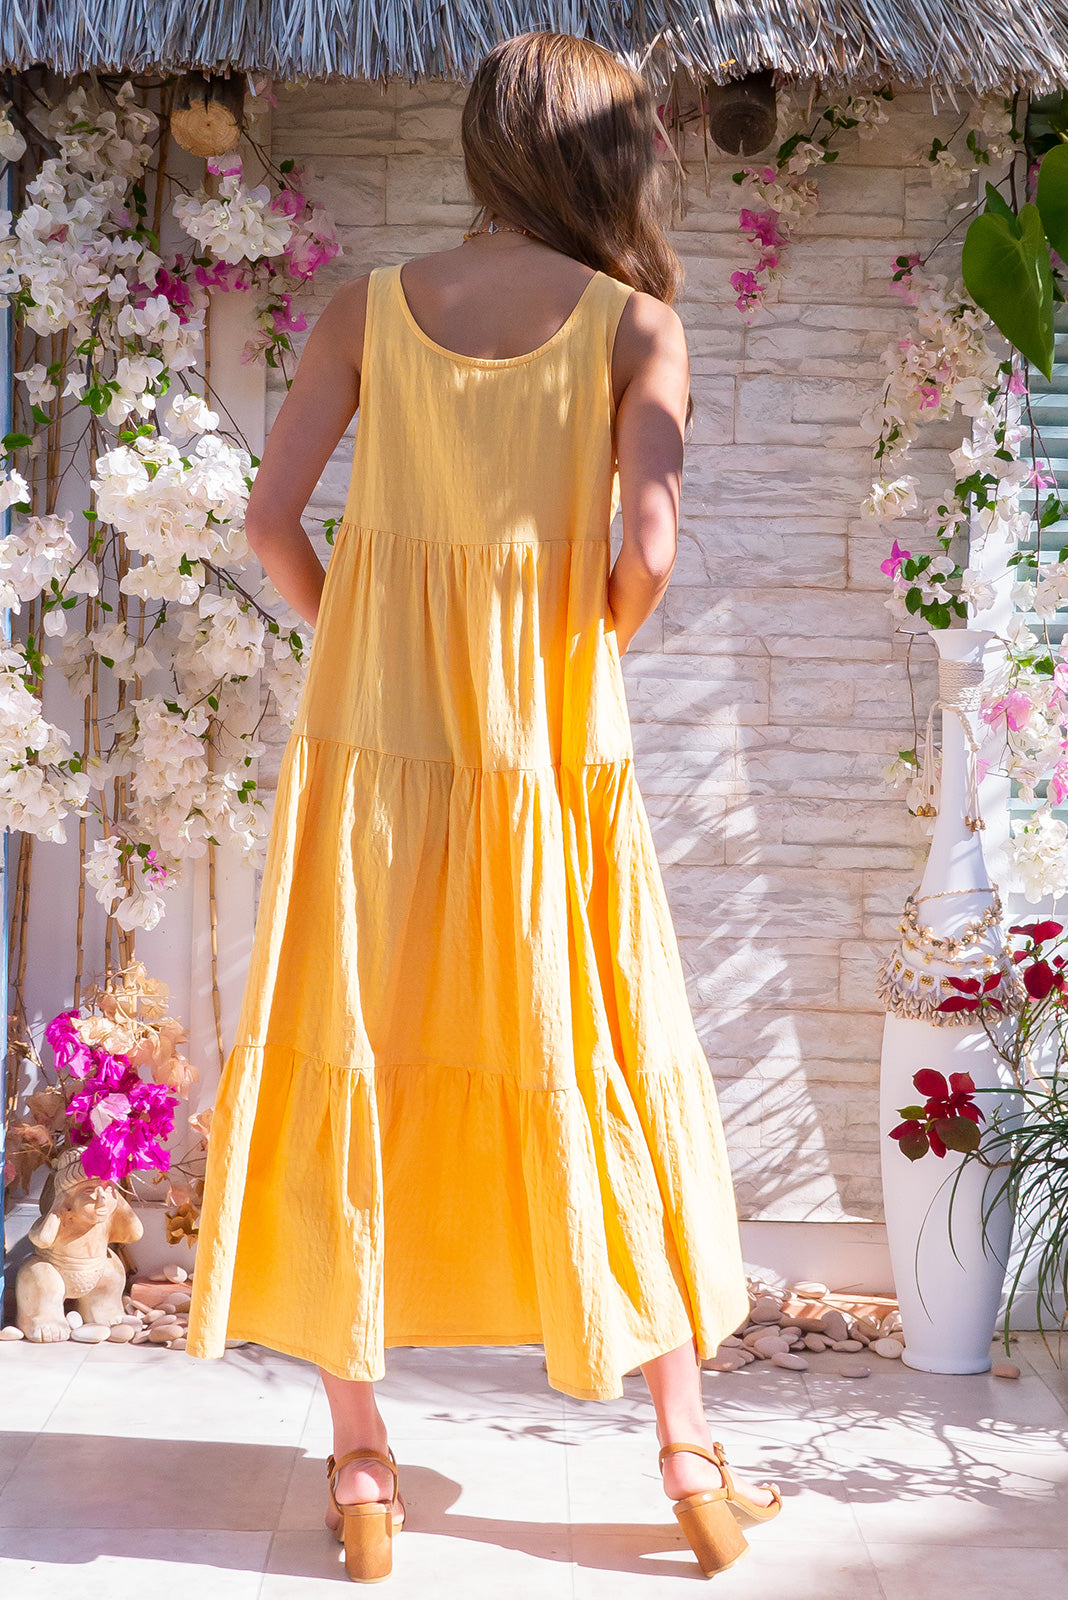 Goldie Sunshine Yellow Midi Dress made from 100% cotton features side pockets, high neck, tiered skirt.